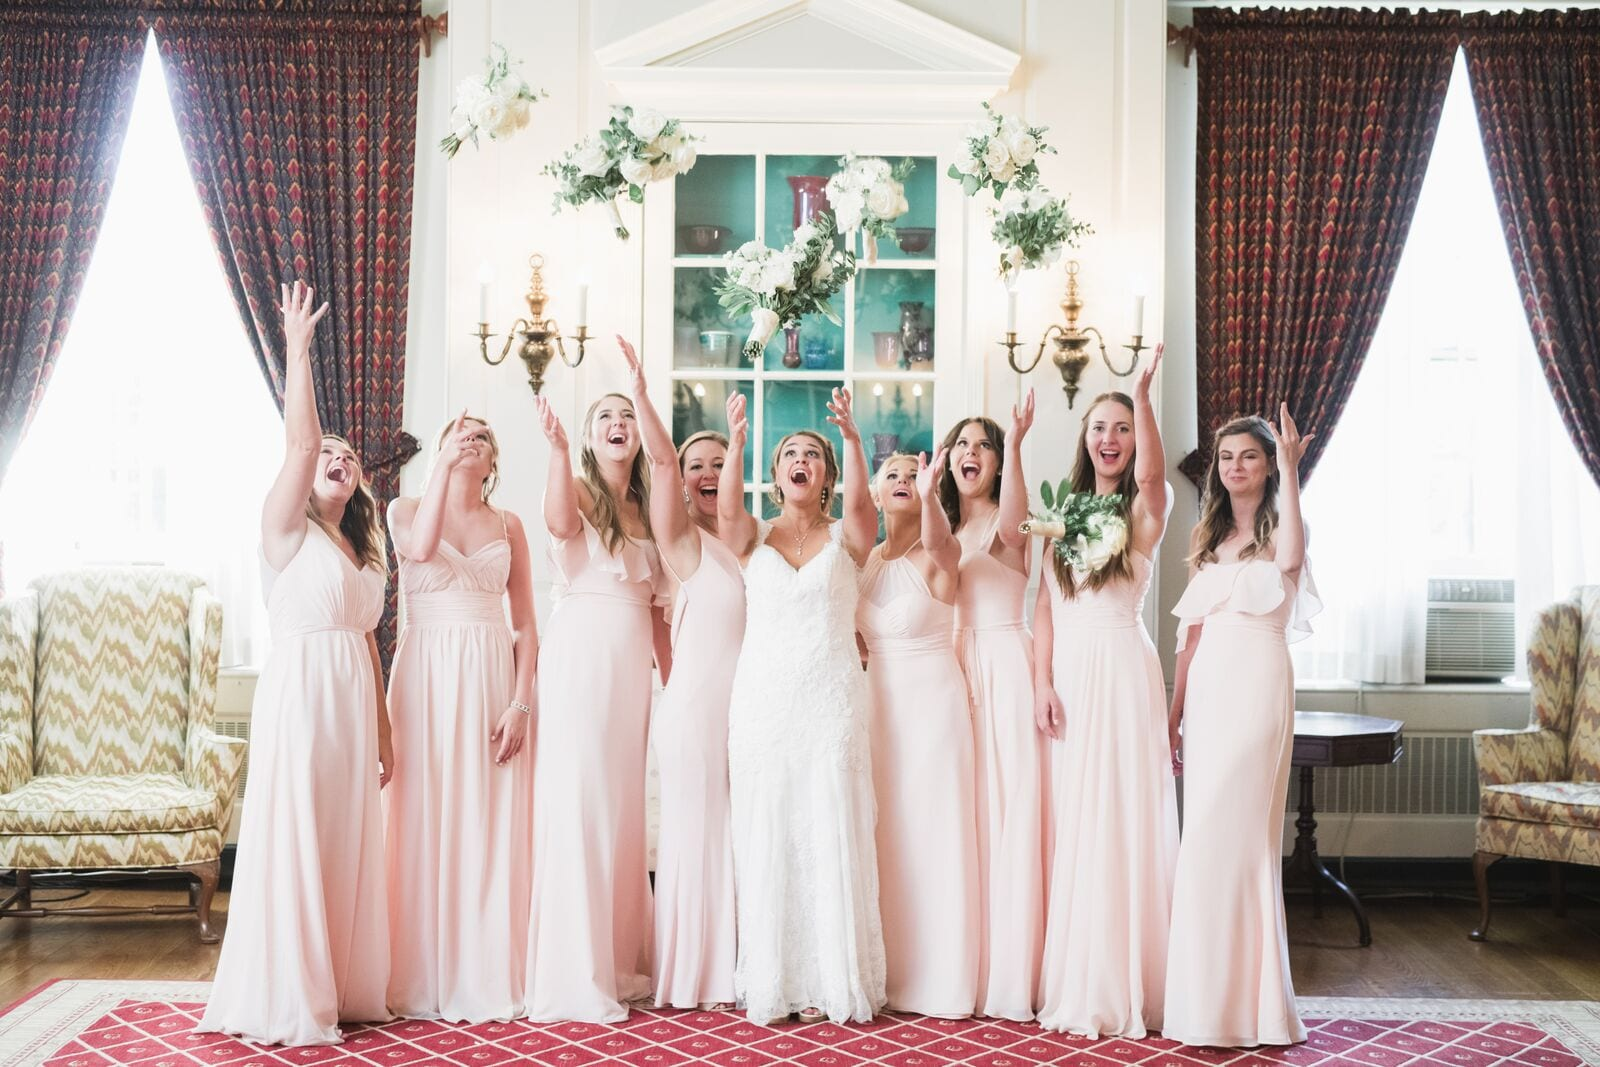 bridesmaids tossing bouquets